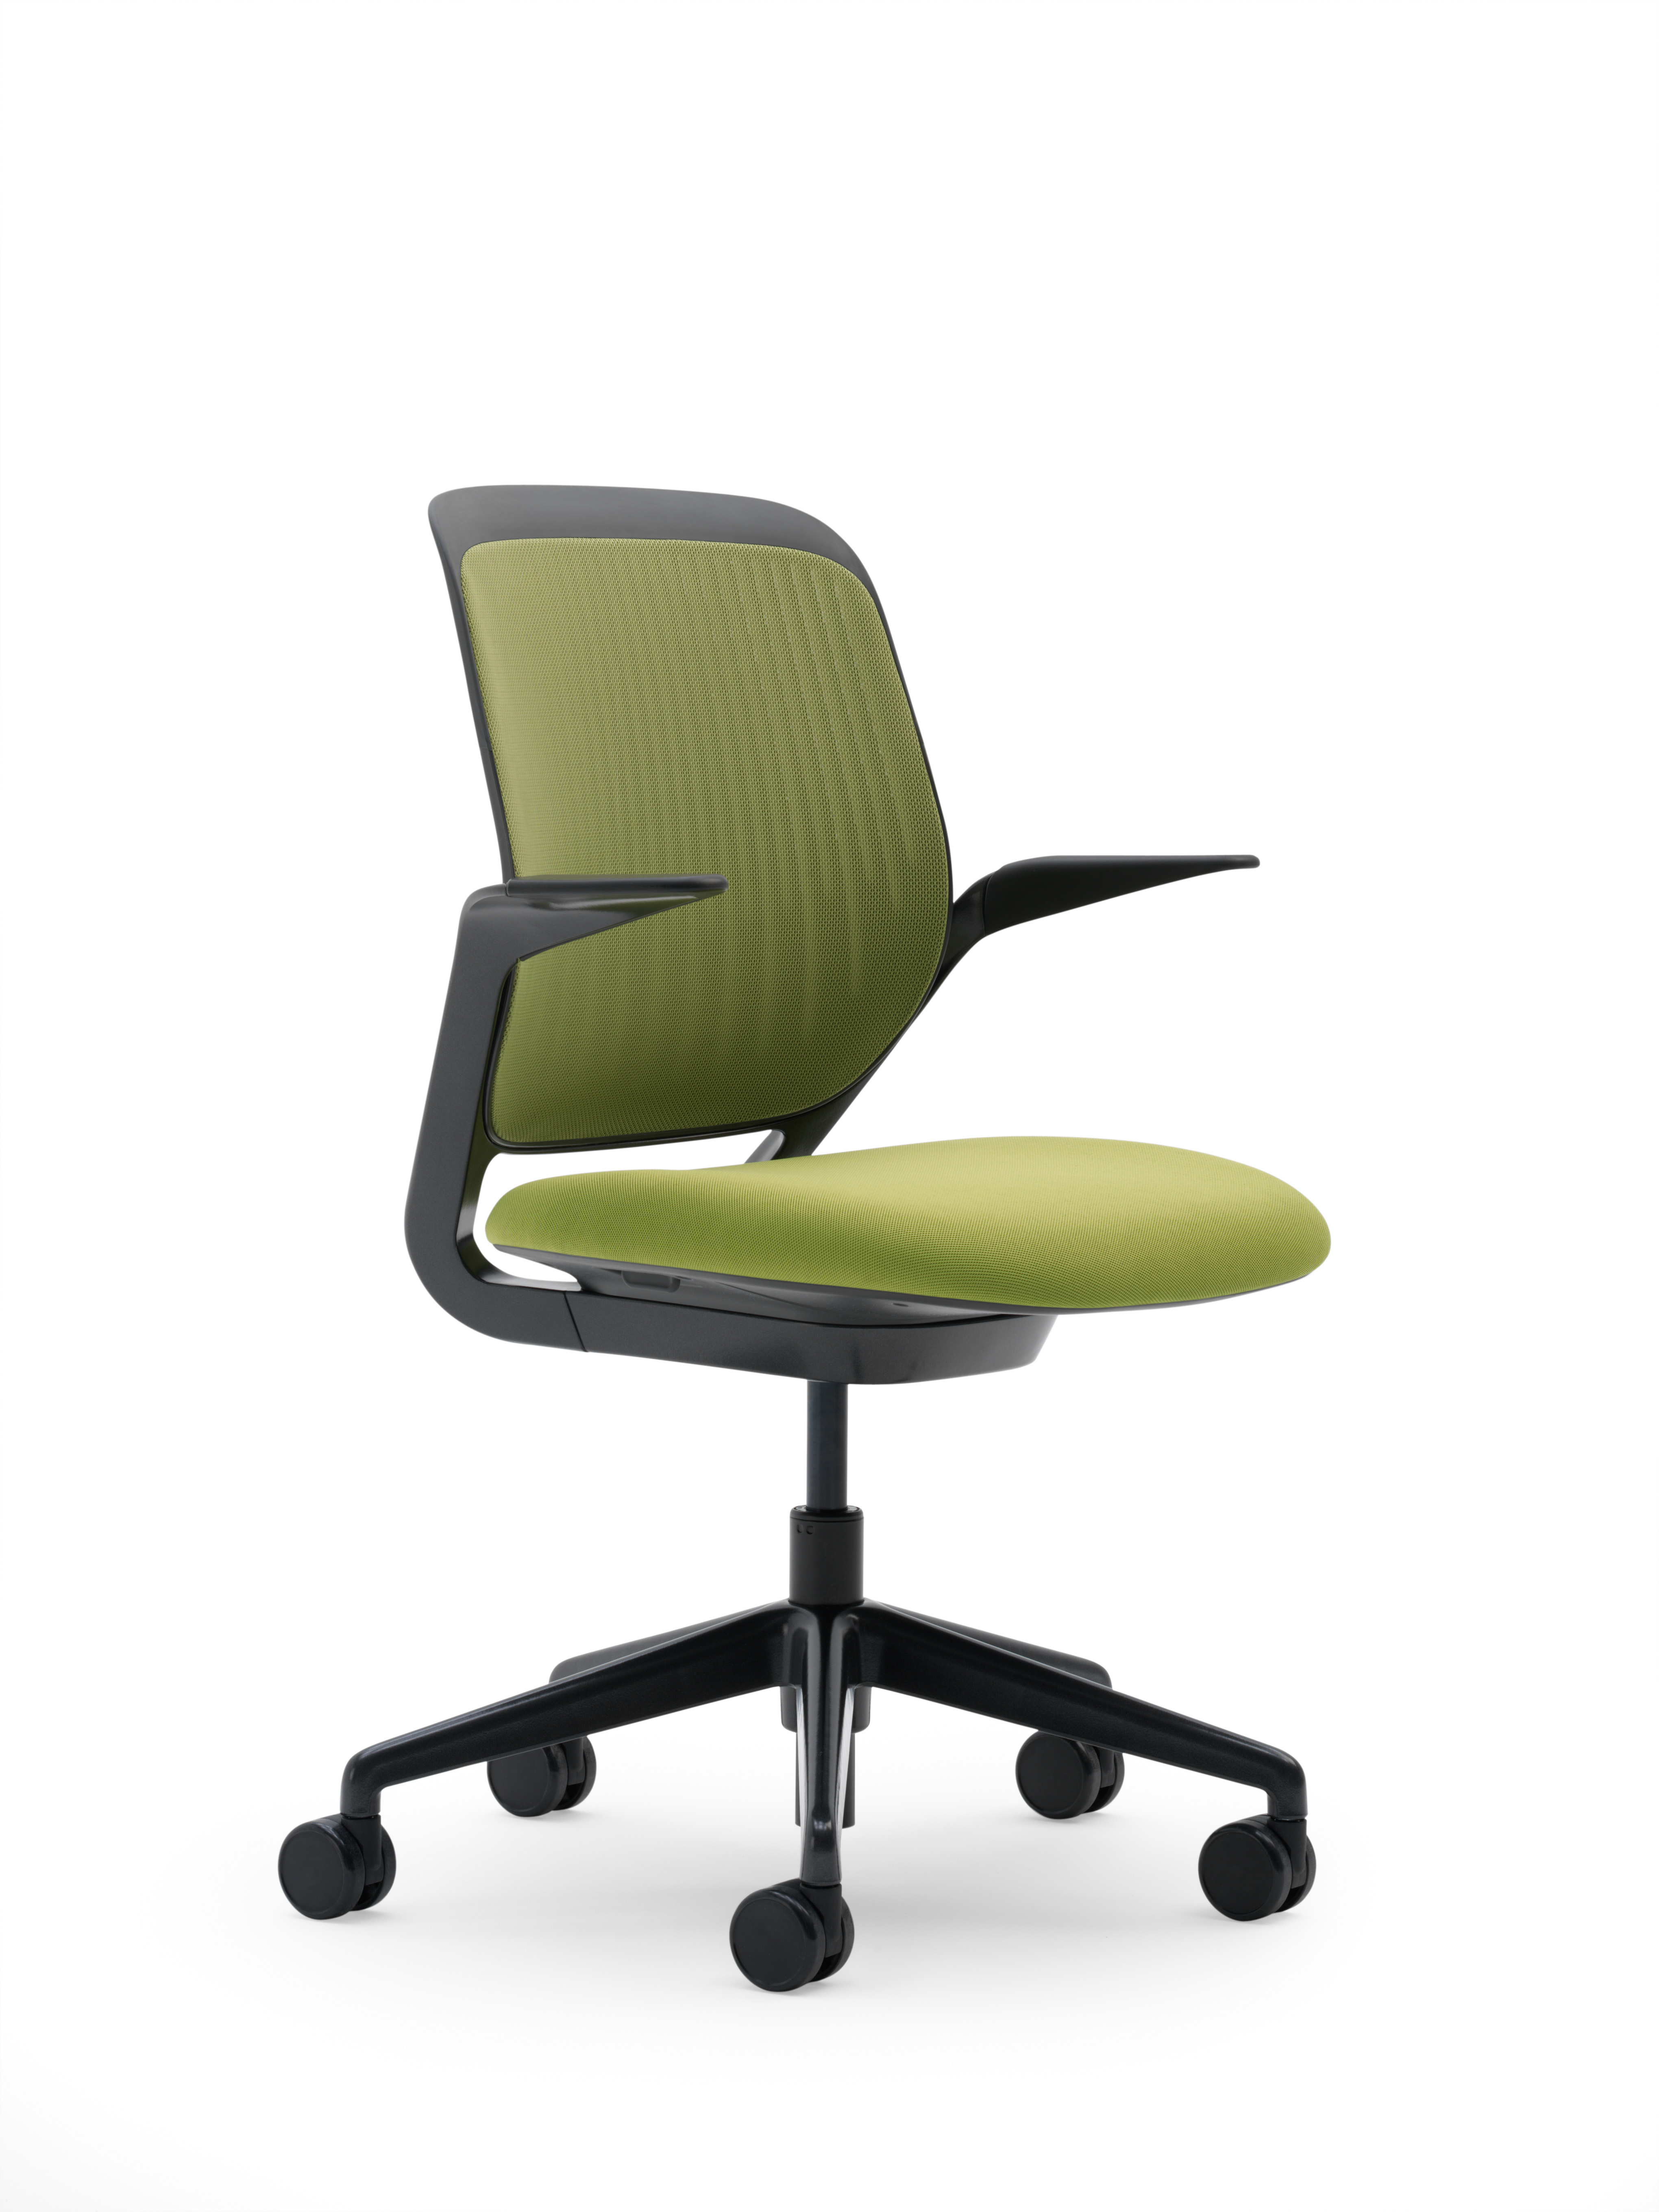 Cobi chair